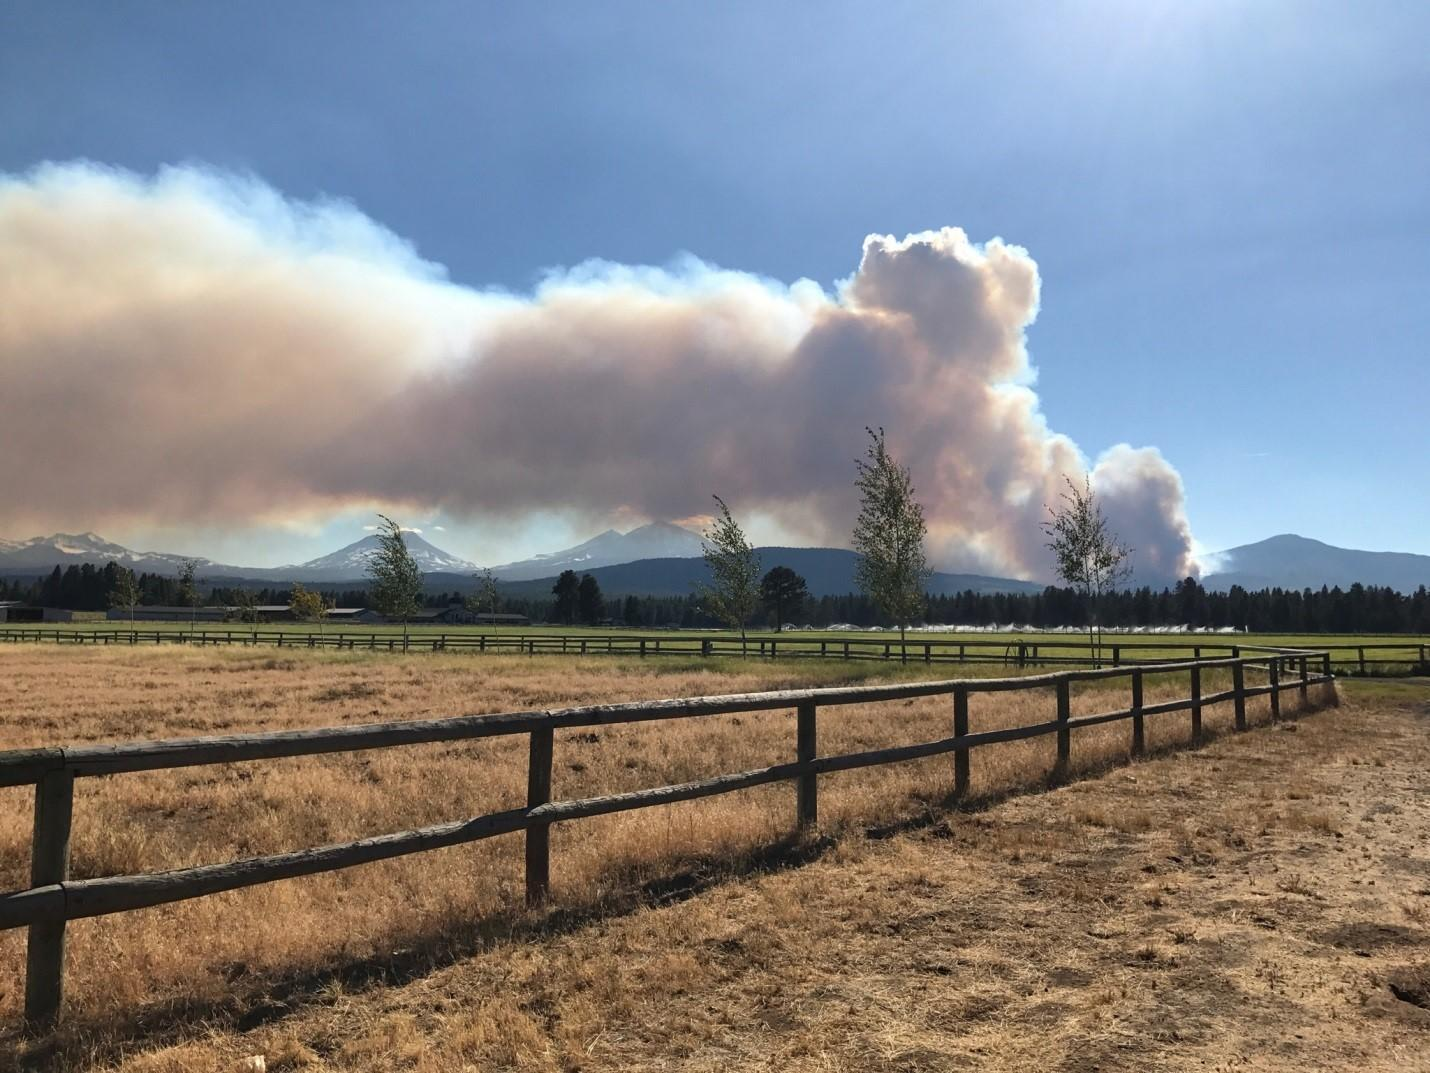 The Milli Fire threatened the Central Oregon town of Sisters in 2017.